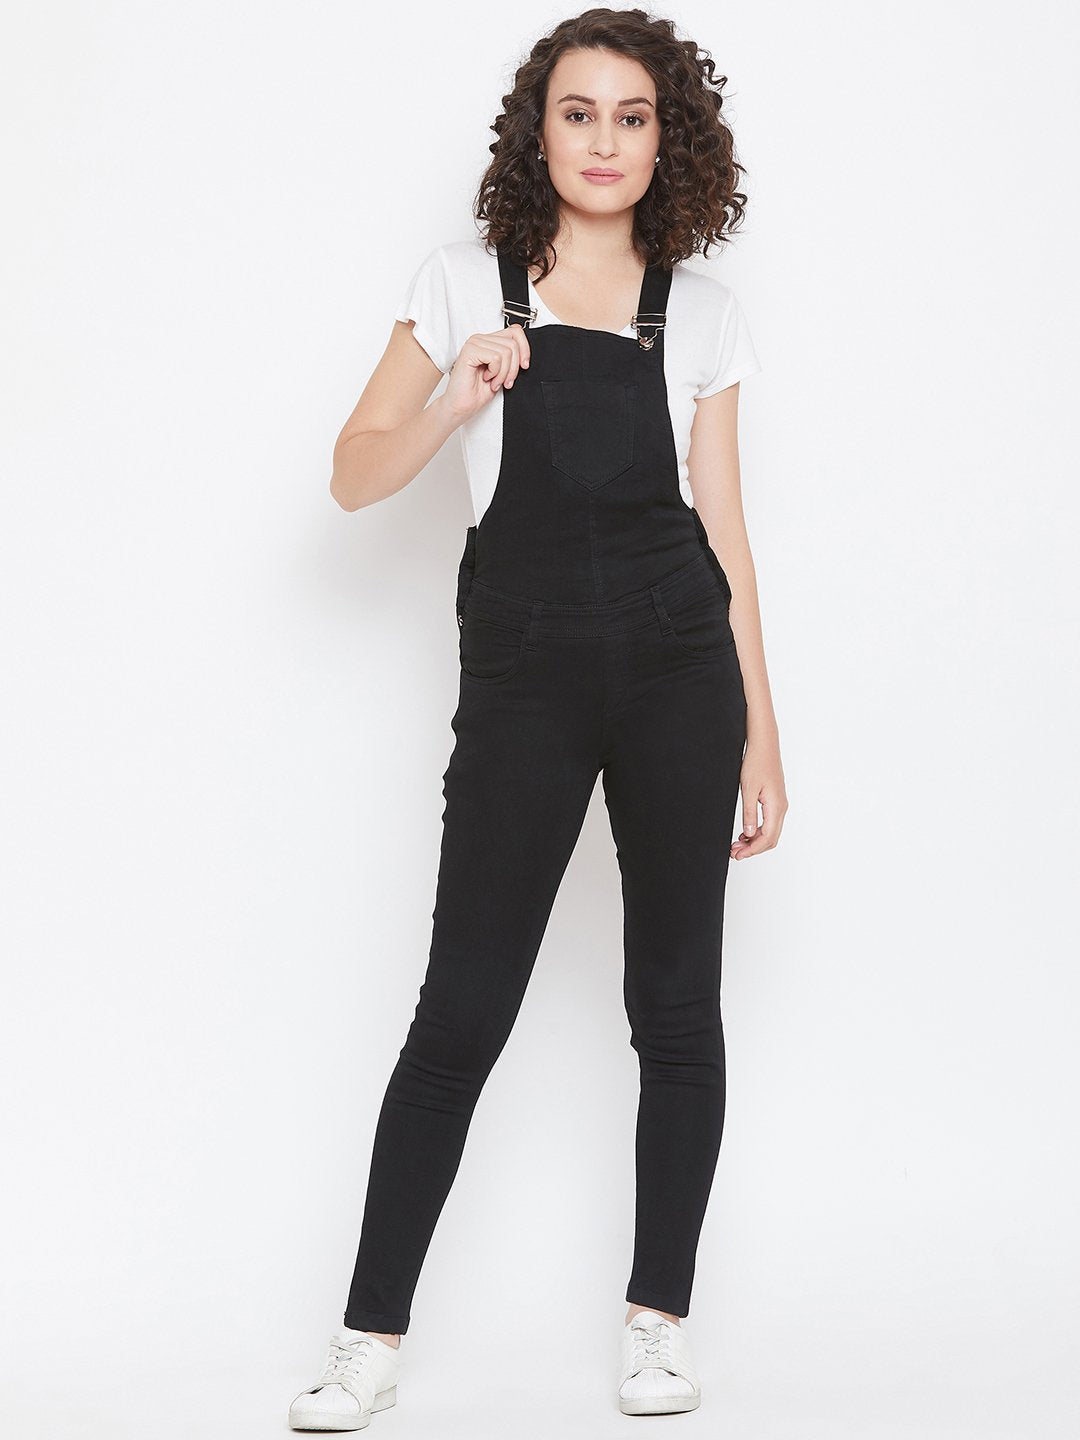 Slim Fit Stretchable Black Dungarees - NiftyJeans